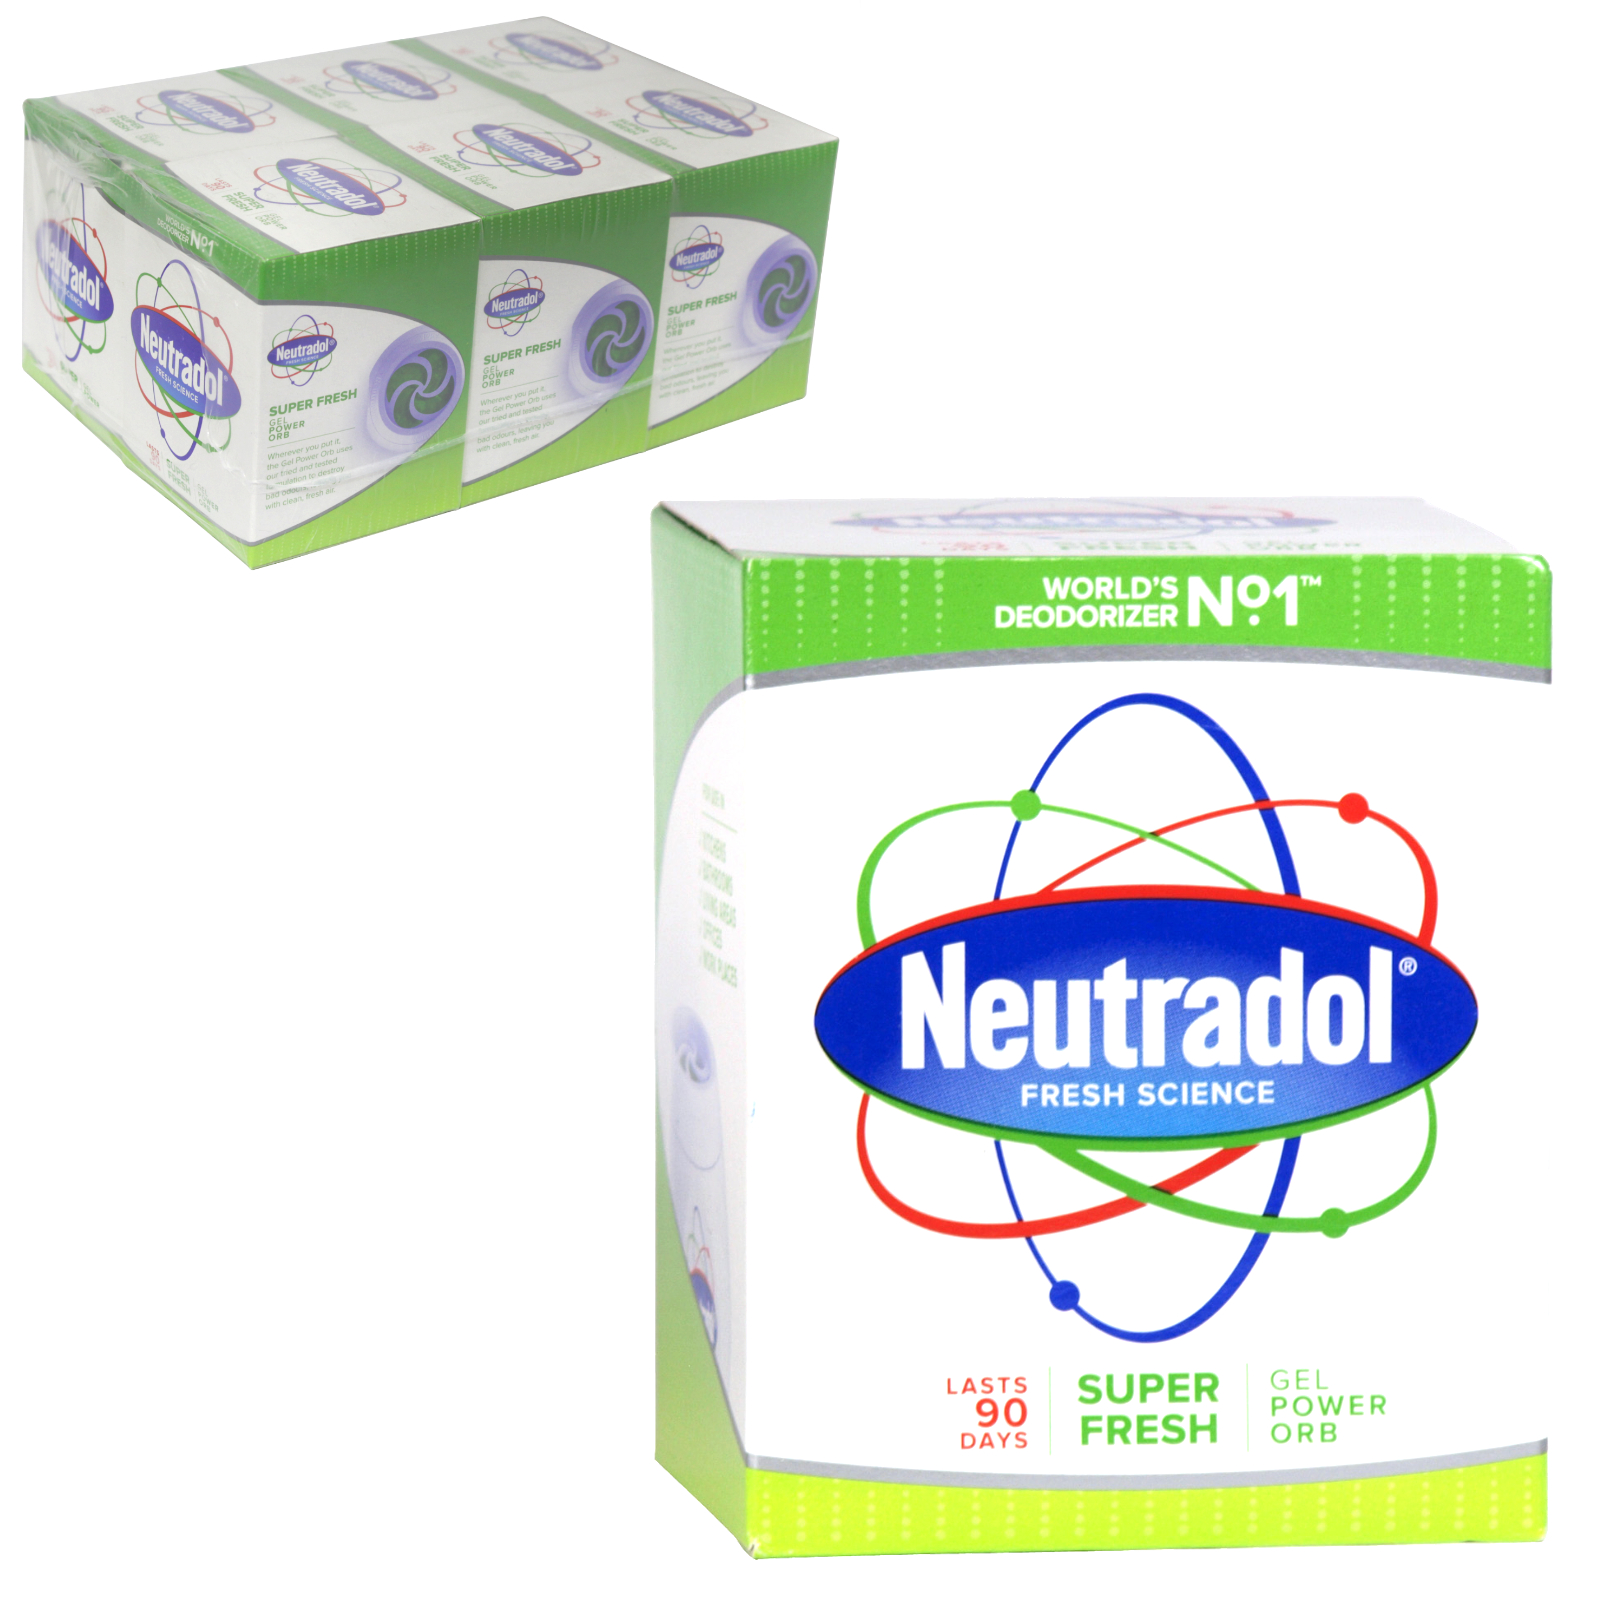 NEUTRADOL GEL AIR FRESH 140G SUPER FRESH X6